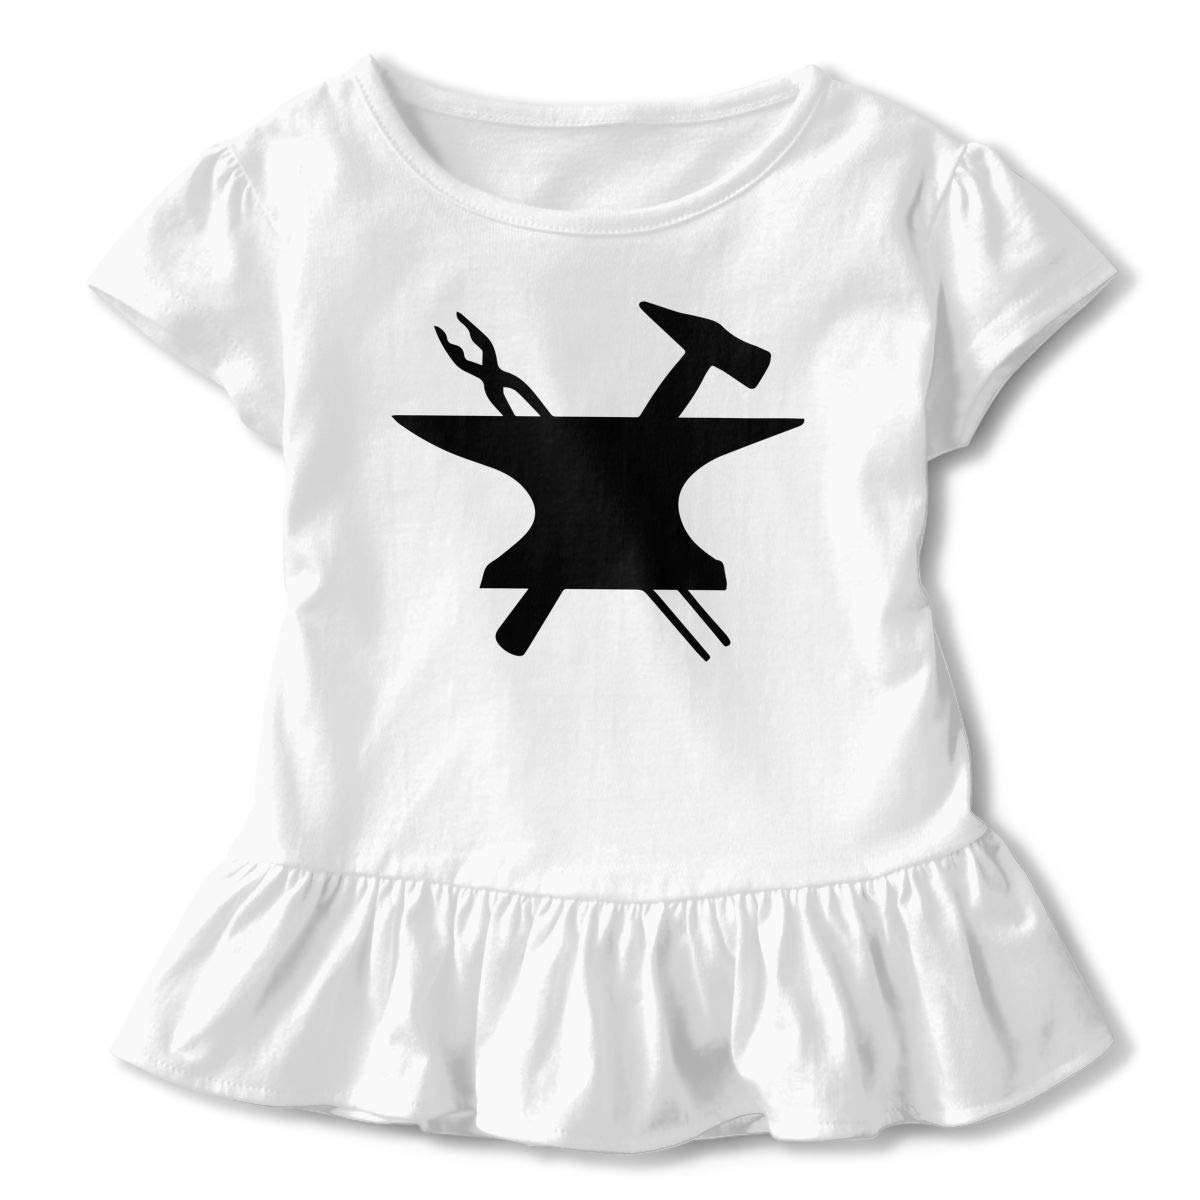 HYBDX9T Toddler Baby Girl Blacksmith Clipart Funny Short Sleeve Cotton T Shirts Basic Tops Tee Clothes